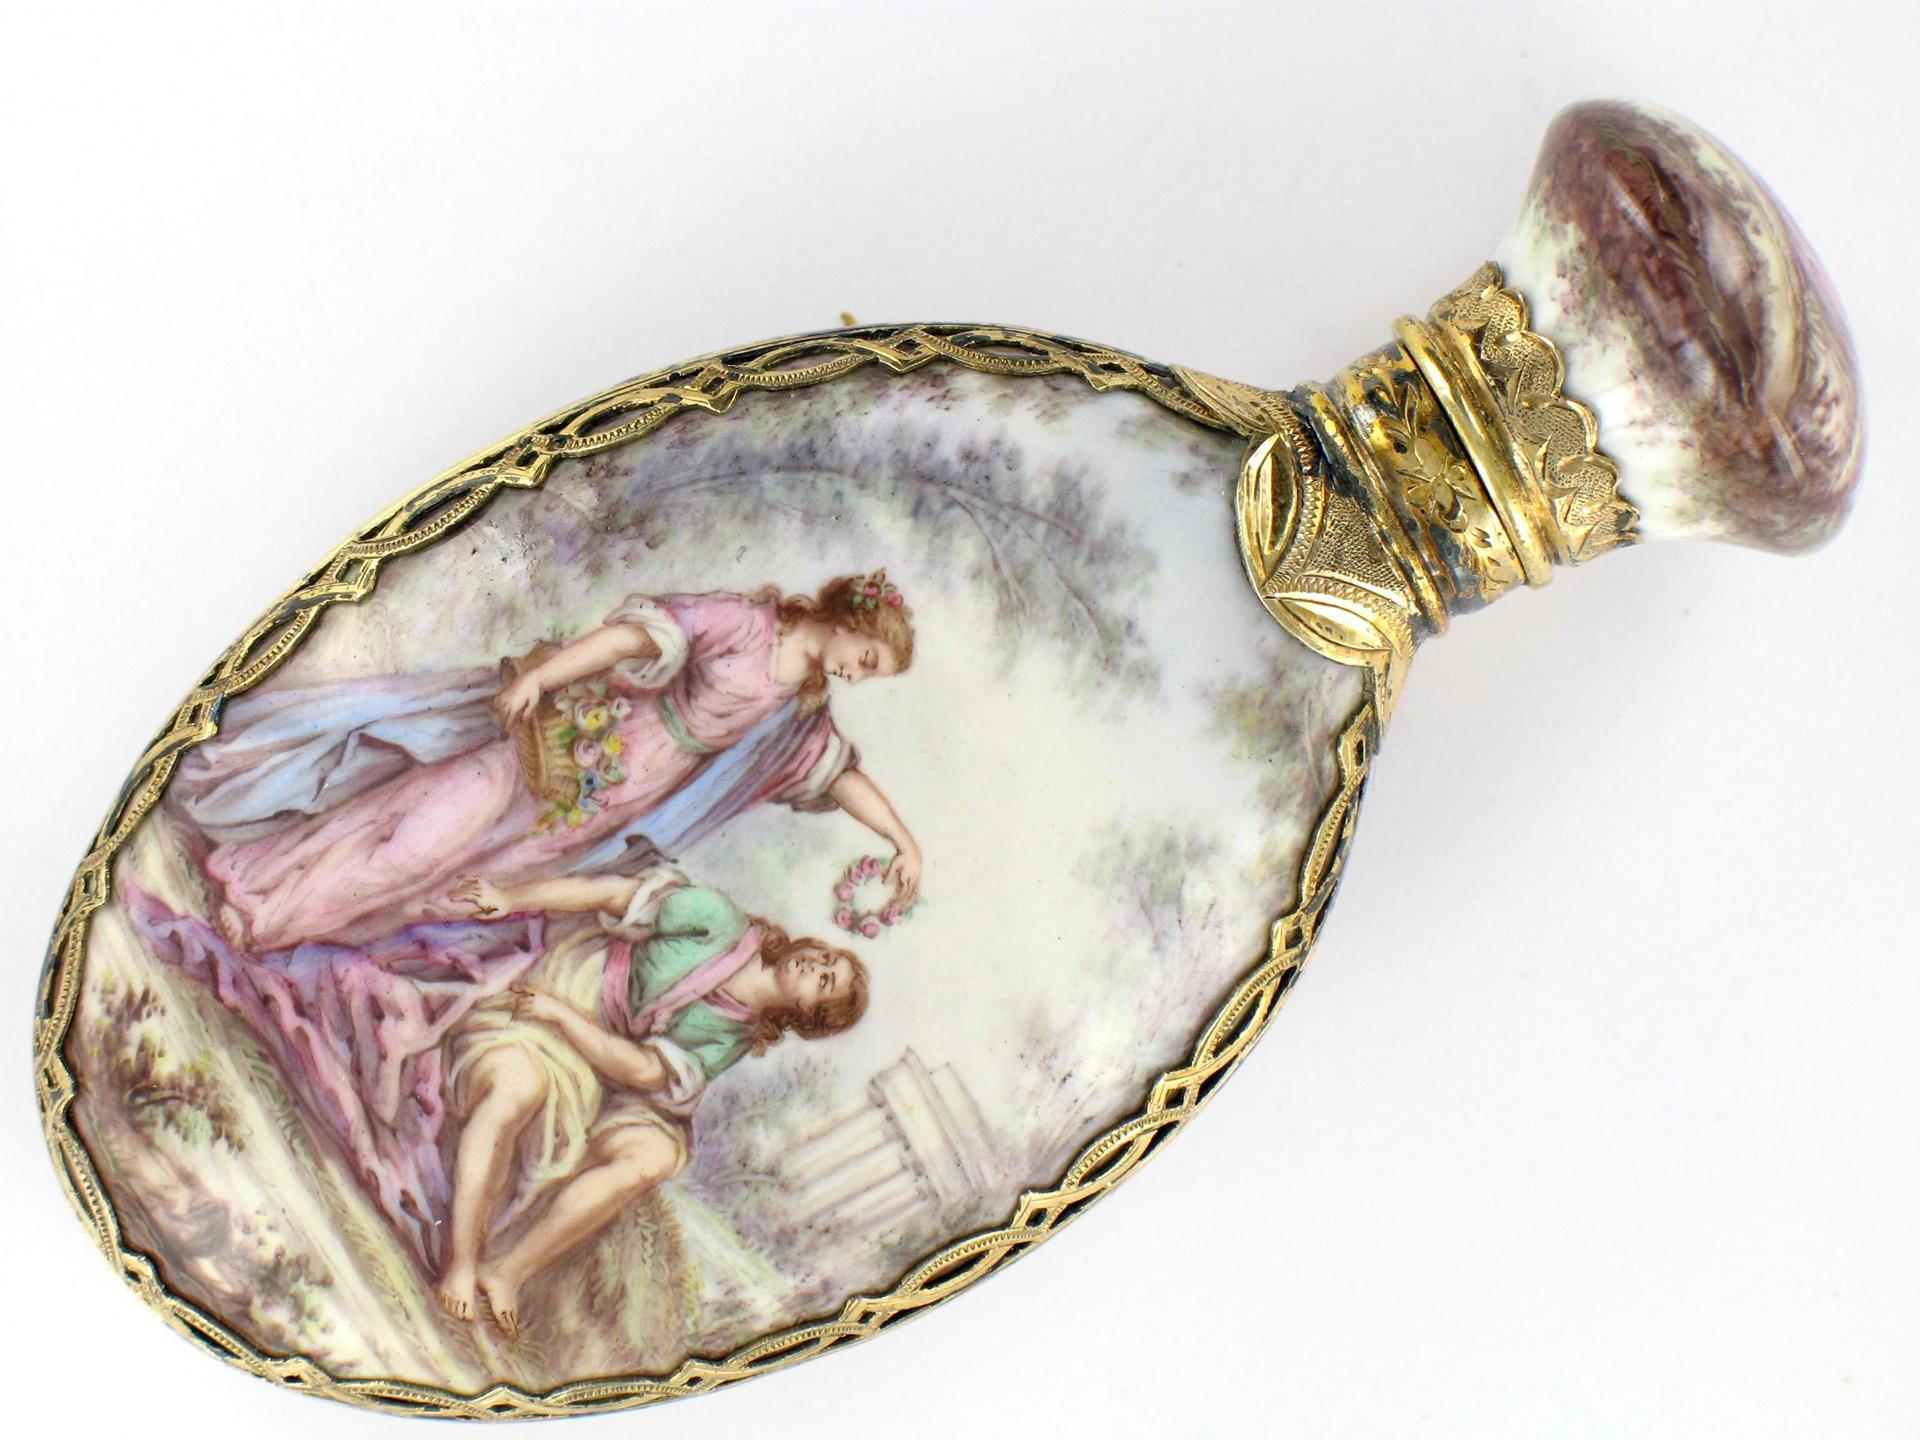 SILVER-GILT AND ENAMEL FLASK.<br/> LATE 19TH CENTURY WORK.<br/>